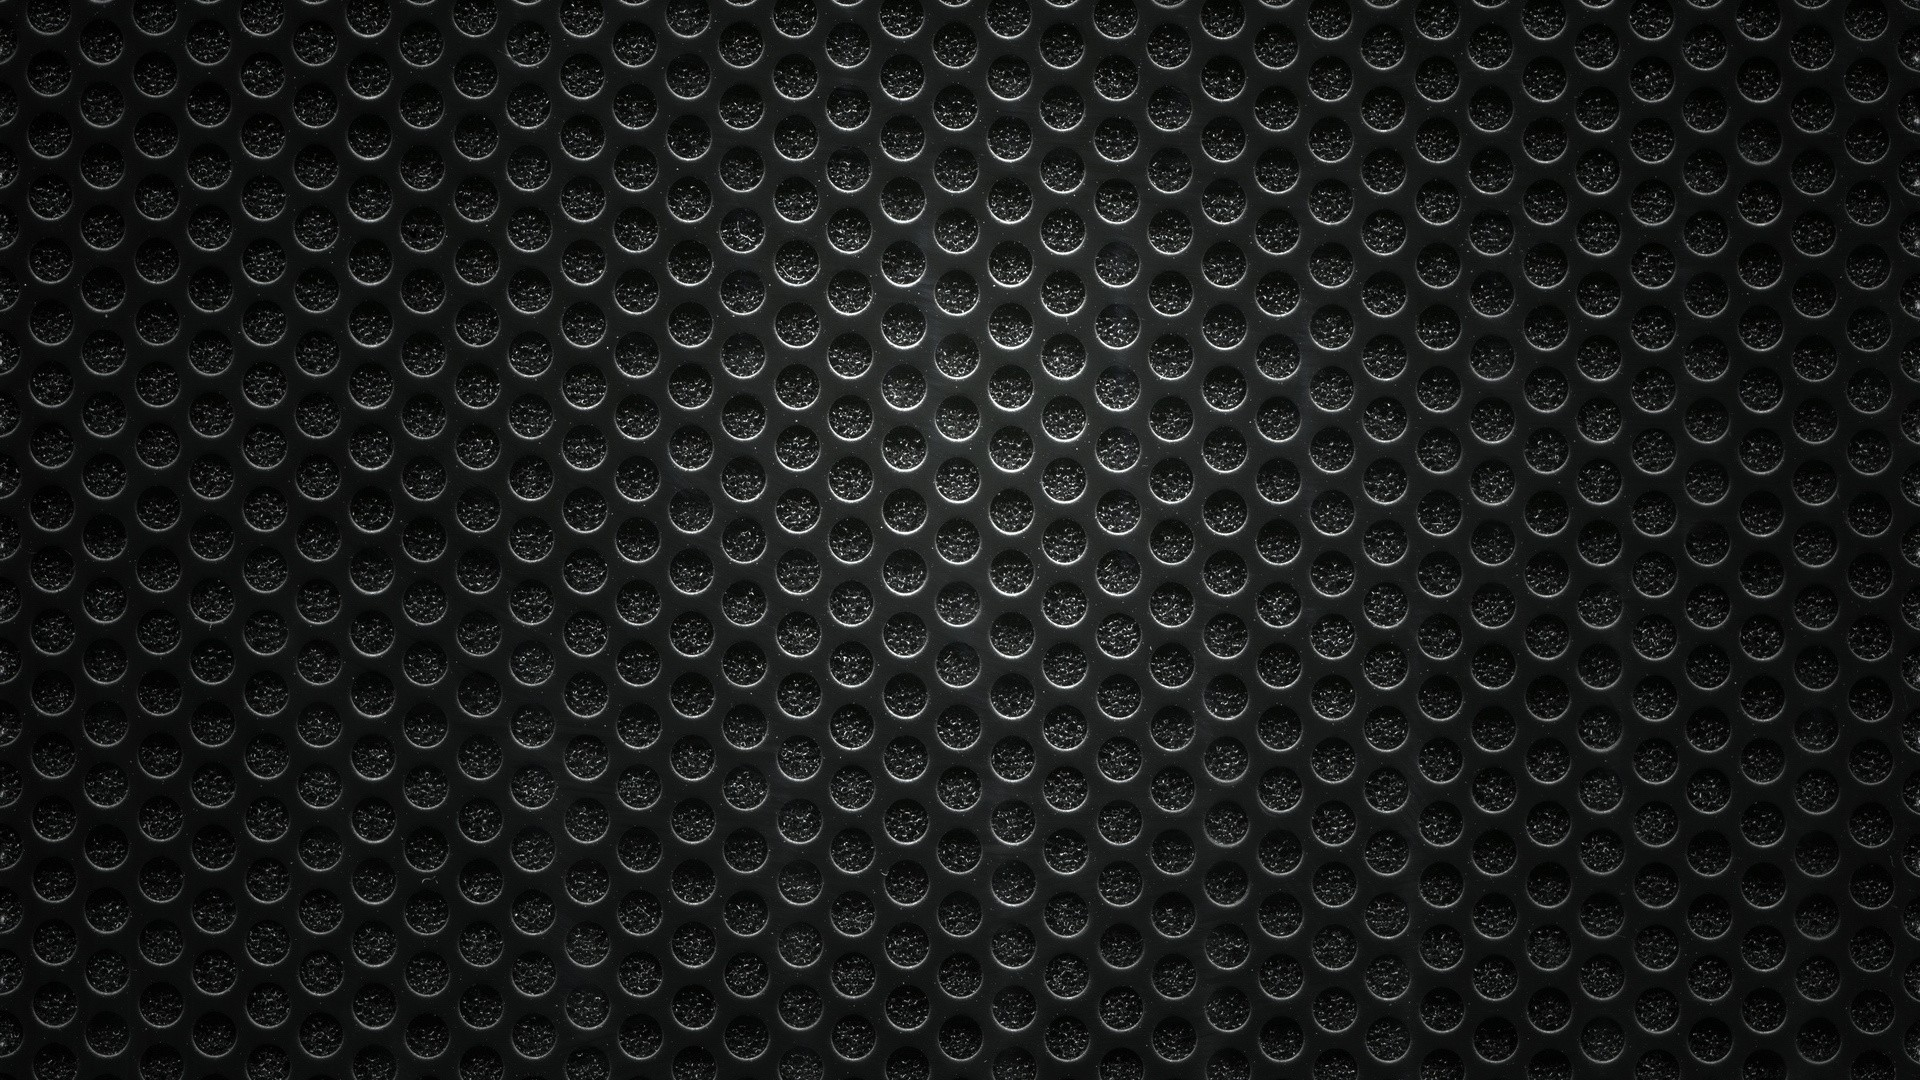 Explore Black Backgrounds, Wallpaper Backgrounds, and more!